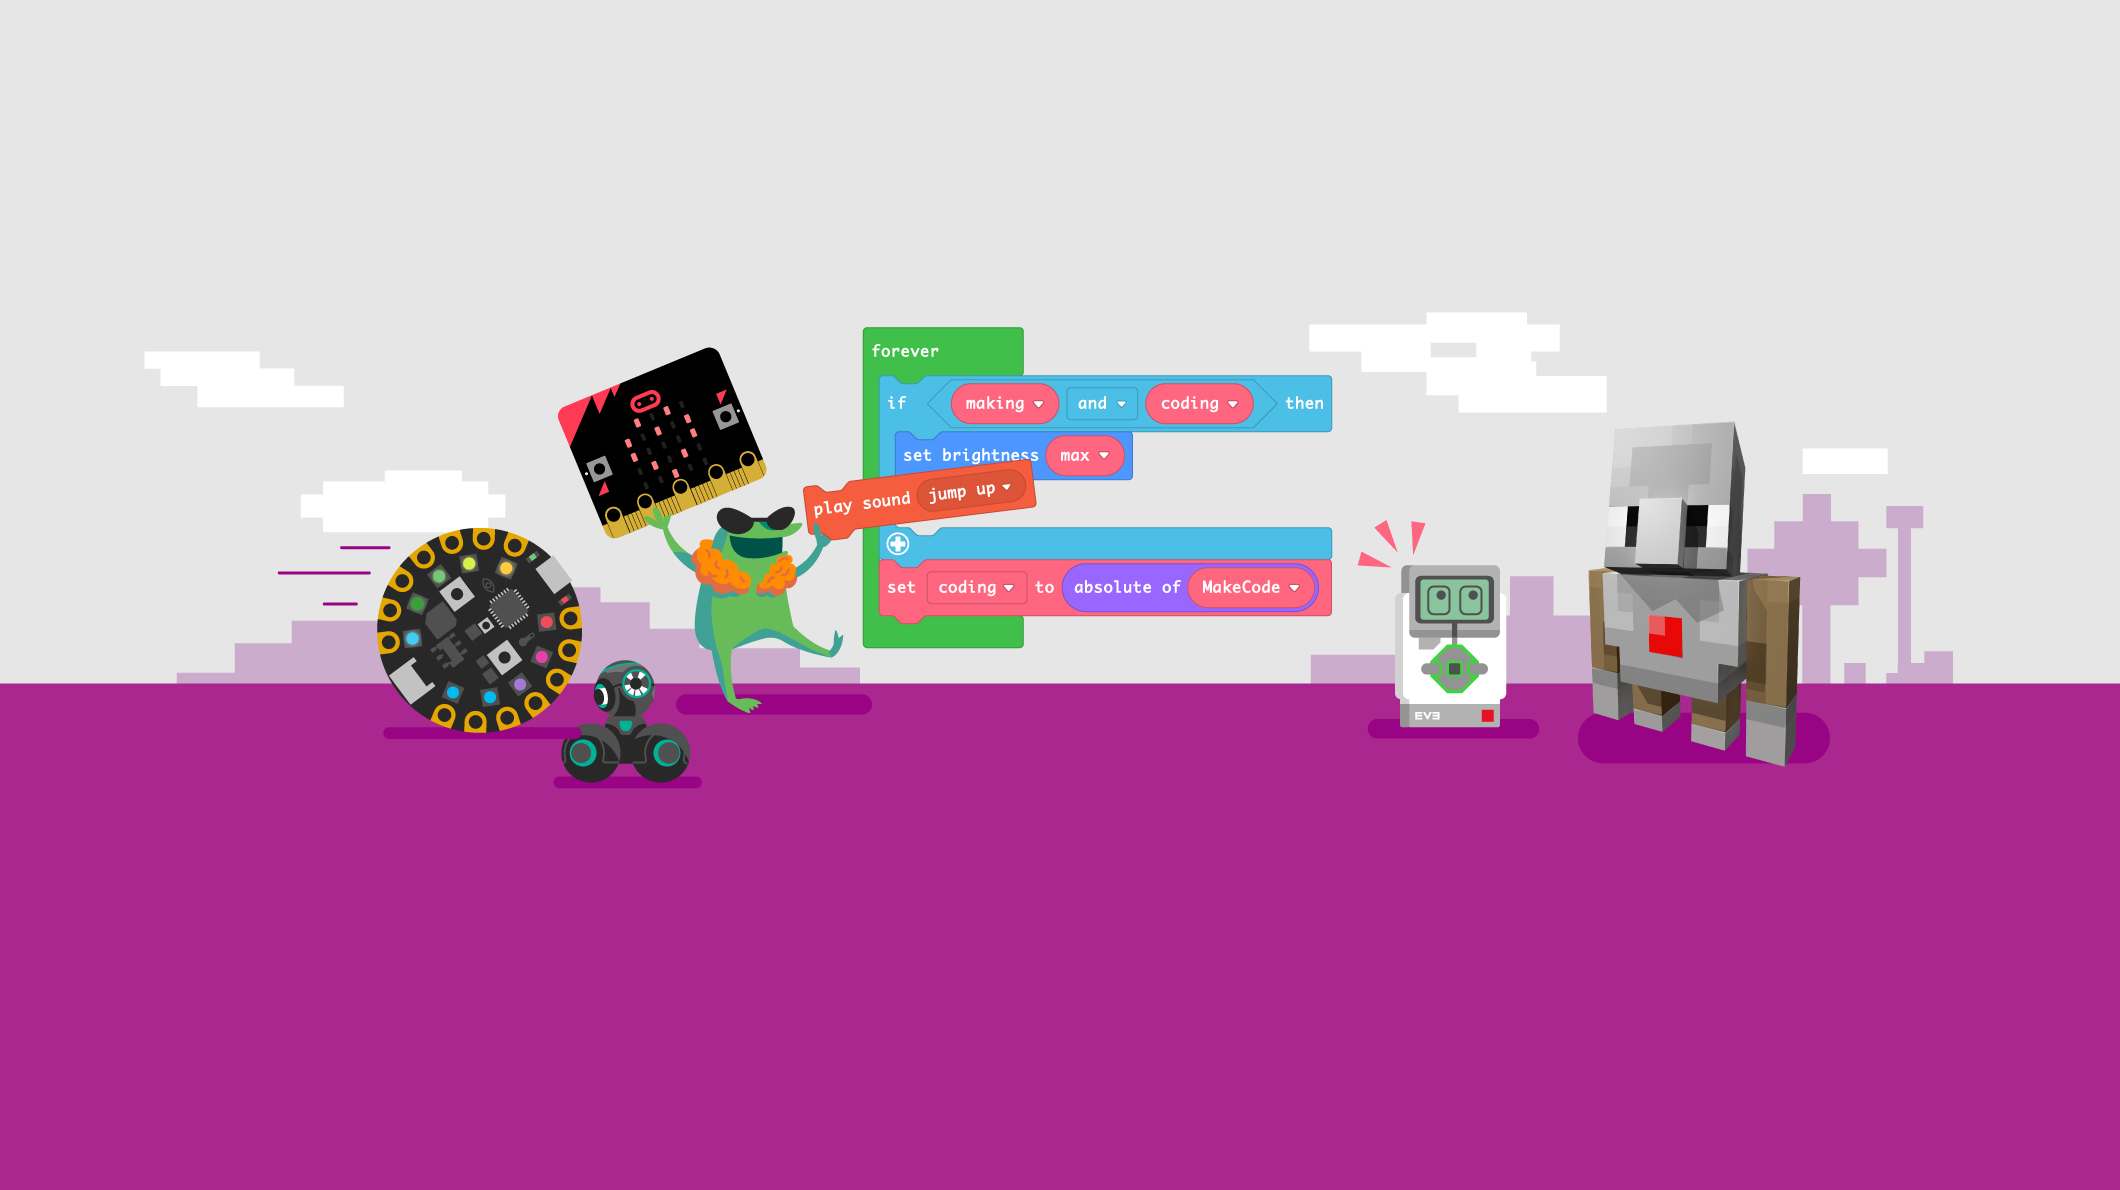 Hardware pieces used with MakeCode are all shown as illustrations, while an animated frog codes in a MakeCode editor.